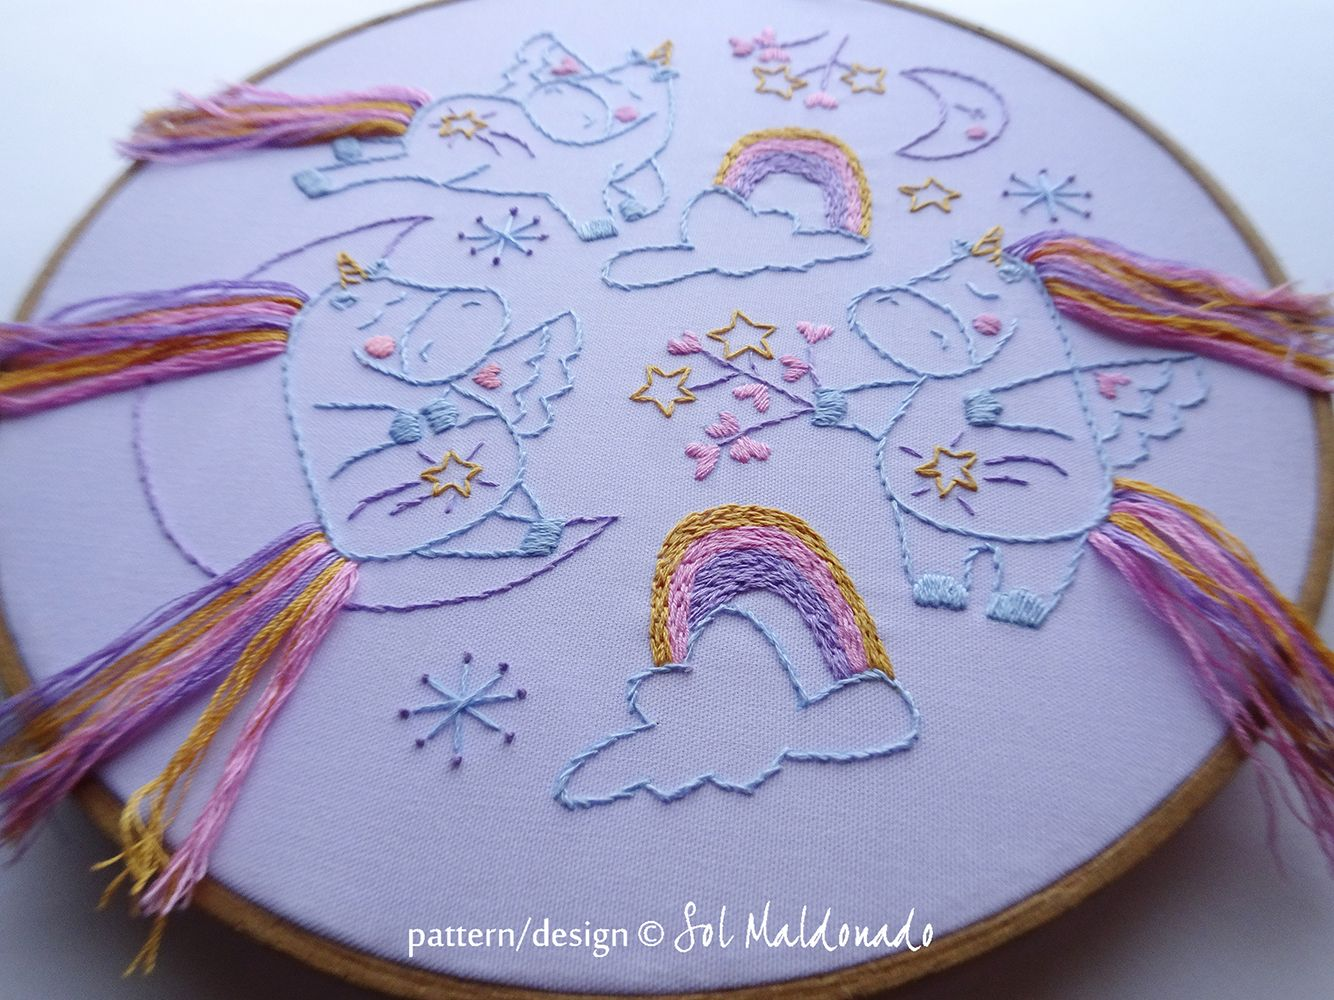 Hoop Unicorns Hand embroidery Pattern  #embroideryunicorn #unicorn #hairembroidery #embroideryhair #believeinmagic #modernembroidery #handembroidery #handembroiderypattern #handembroideryhoop #learnembroidery #easyembroidery #embroiderypattern #handembroiderylove #childrenembroidery #embroideryaddict #bordadoamao #bordadoamano#learnembroidery #modernembroidery #borduuwek #broderie #riscoparabordado #embroiderylife #embroiderybeginner #stitching #stickerei